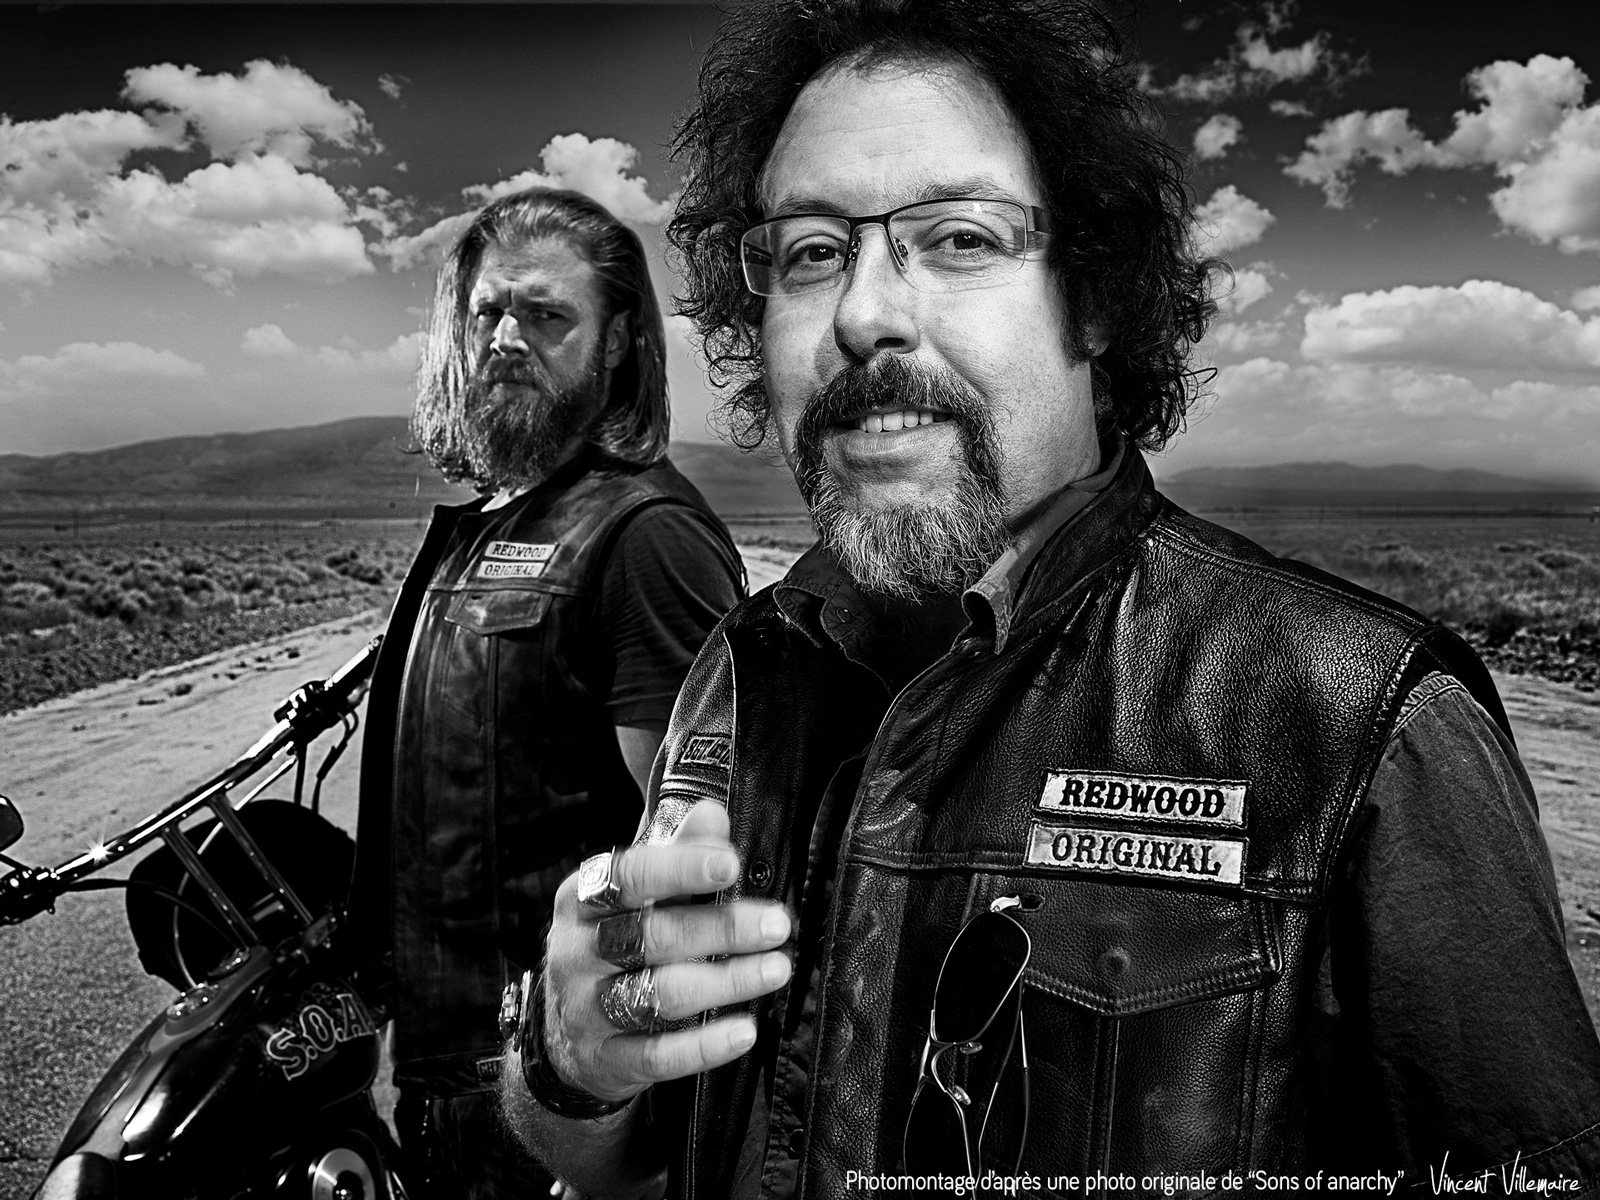 Bad Boys (based on Sons of Anarchy)